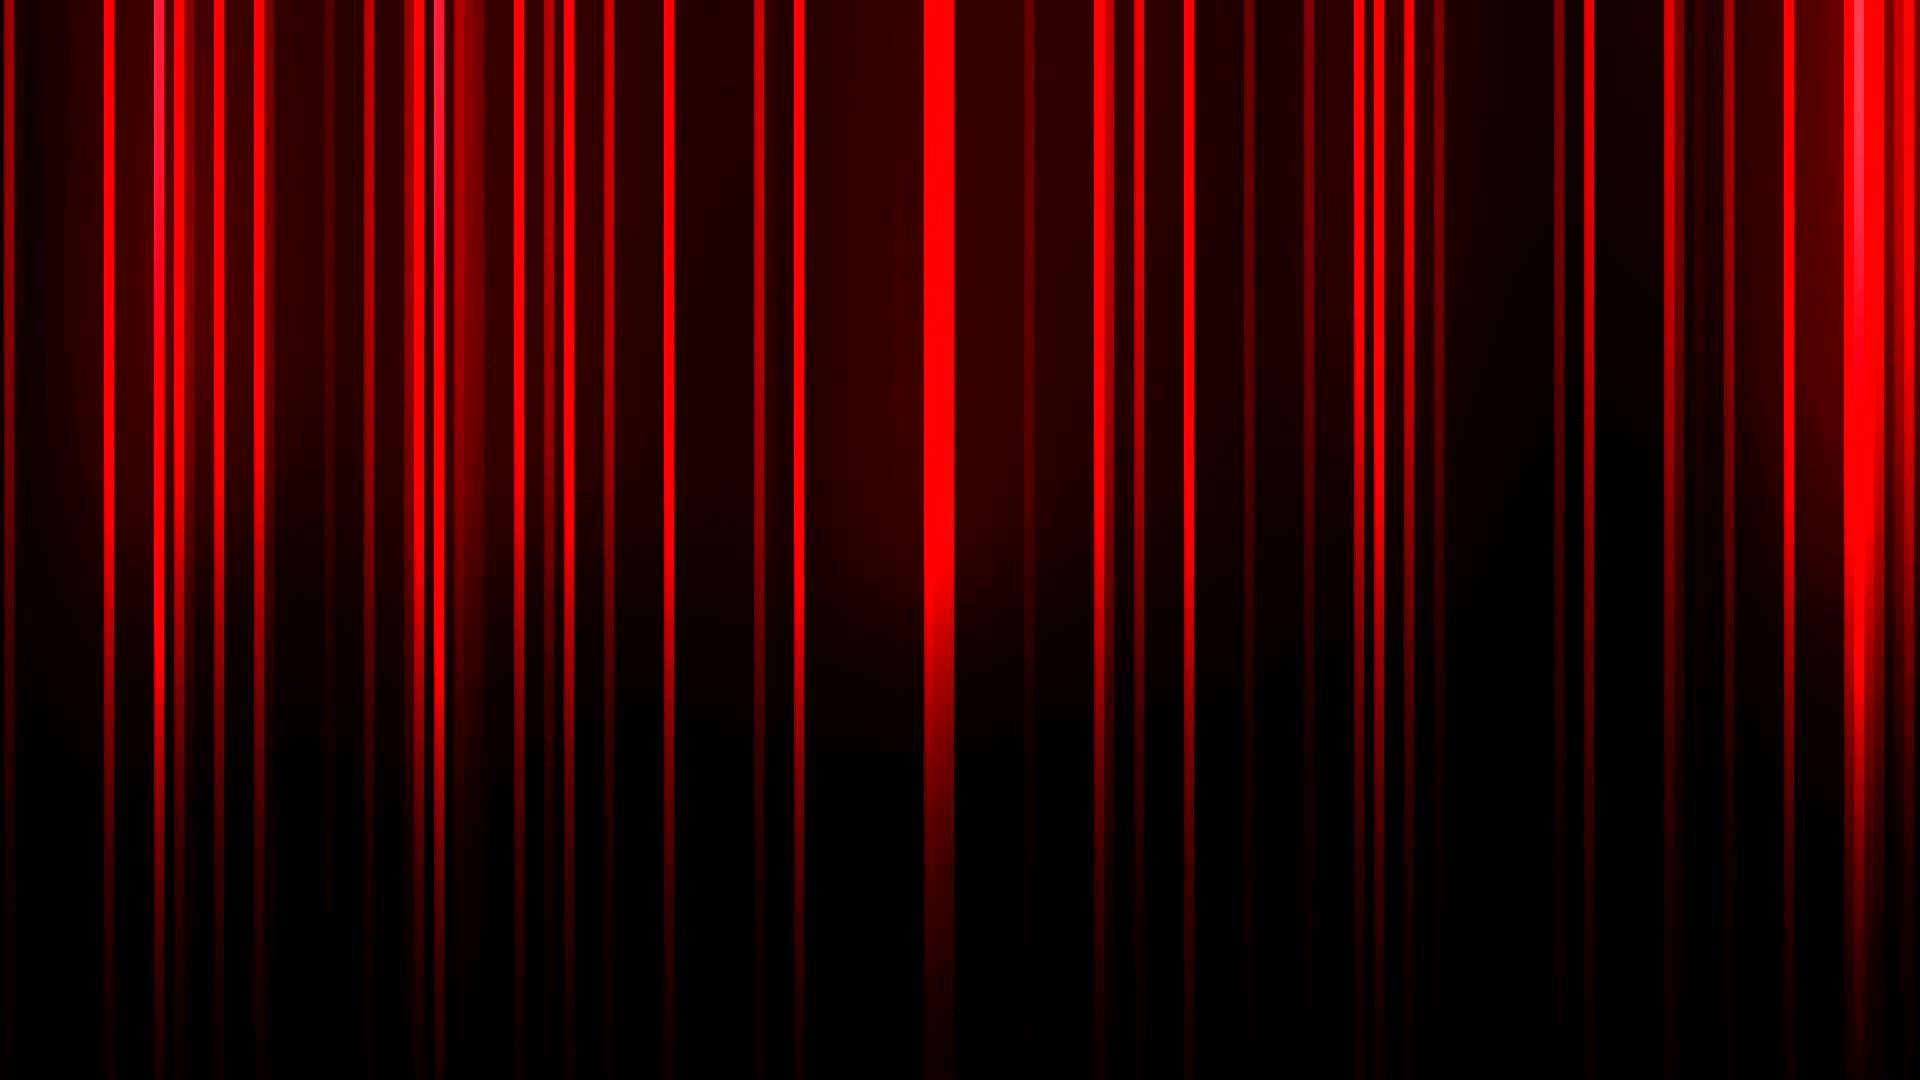 Neon Red Background (53+ images) Red Neon Background